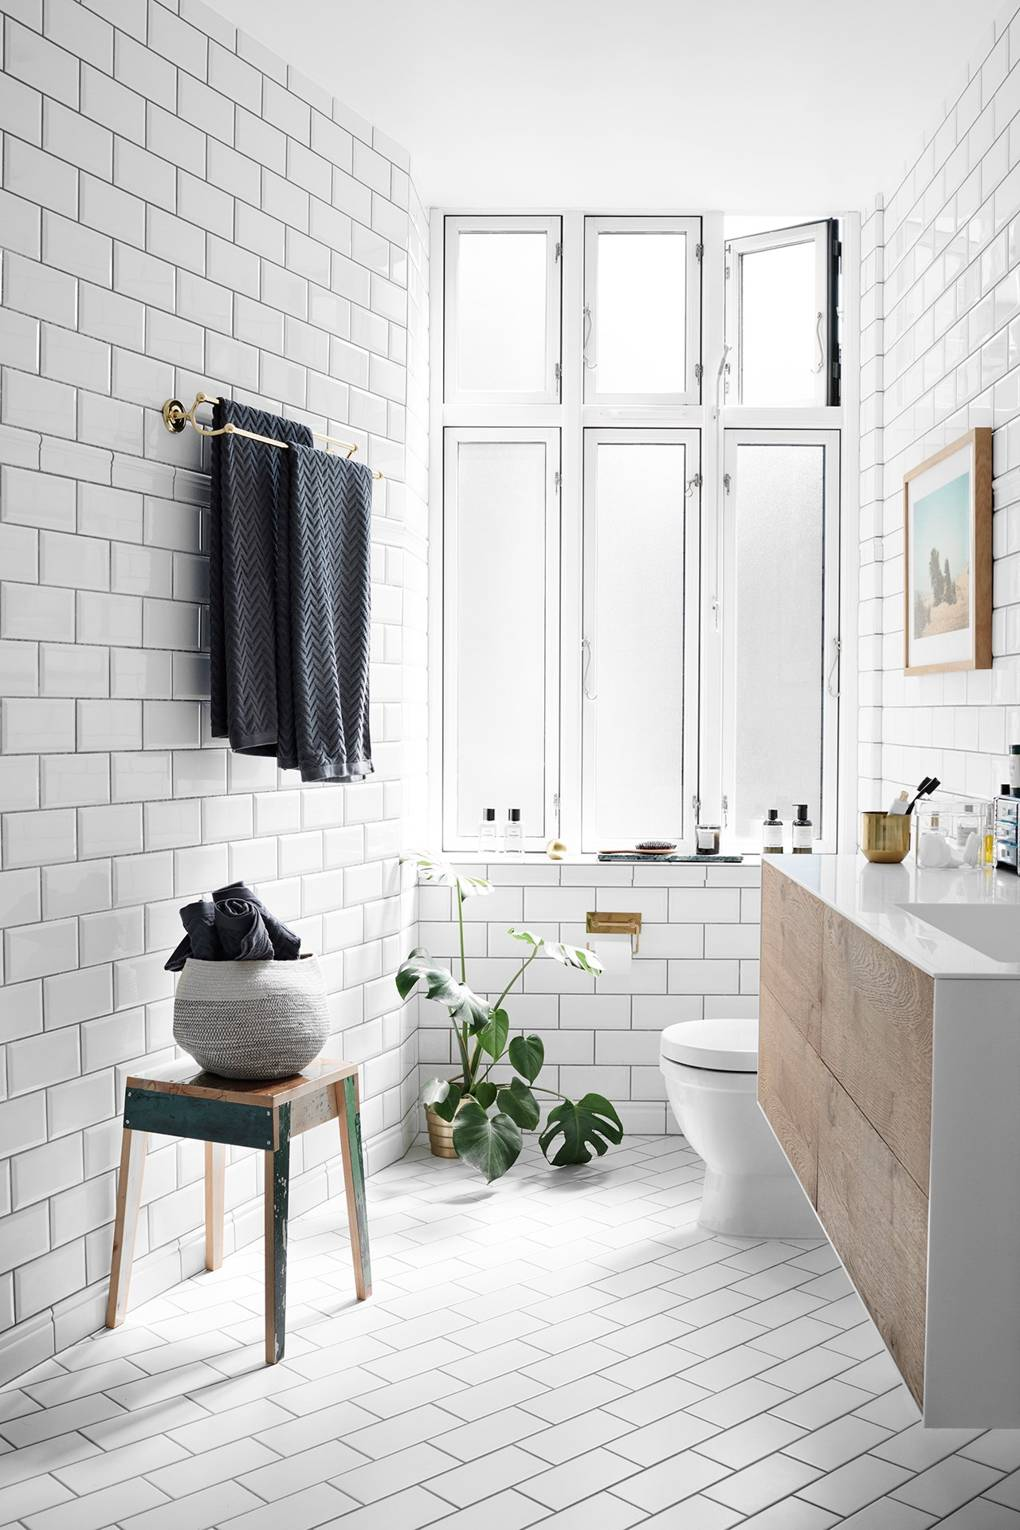 Bathroom tile ideas | House & Garden